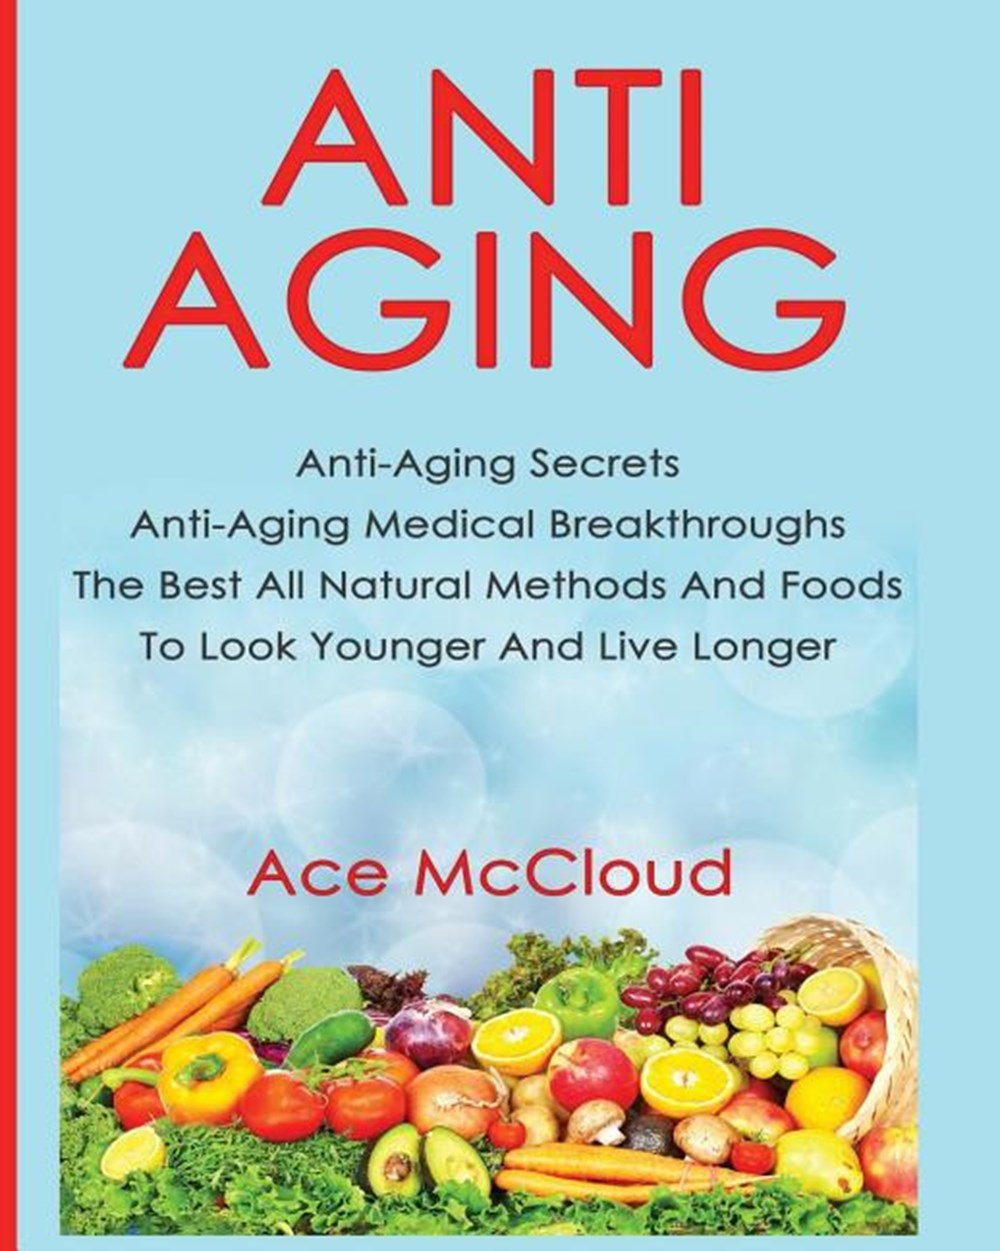 Anti-Aging Anti-Aging Secrets Anti-Aging Medical Breakthroughs The Best All Natural Methods And Food